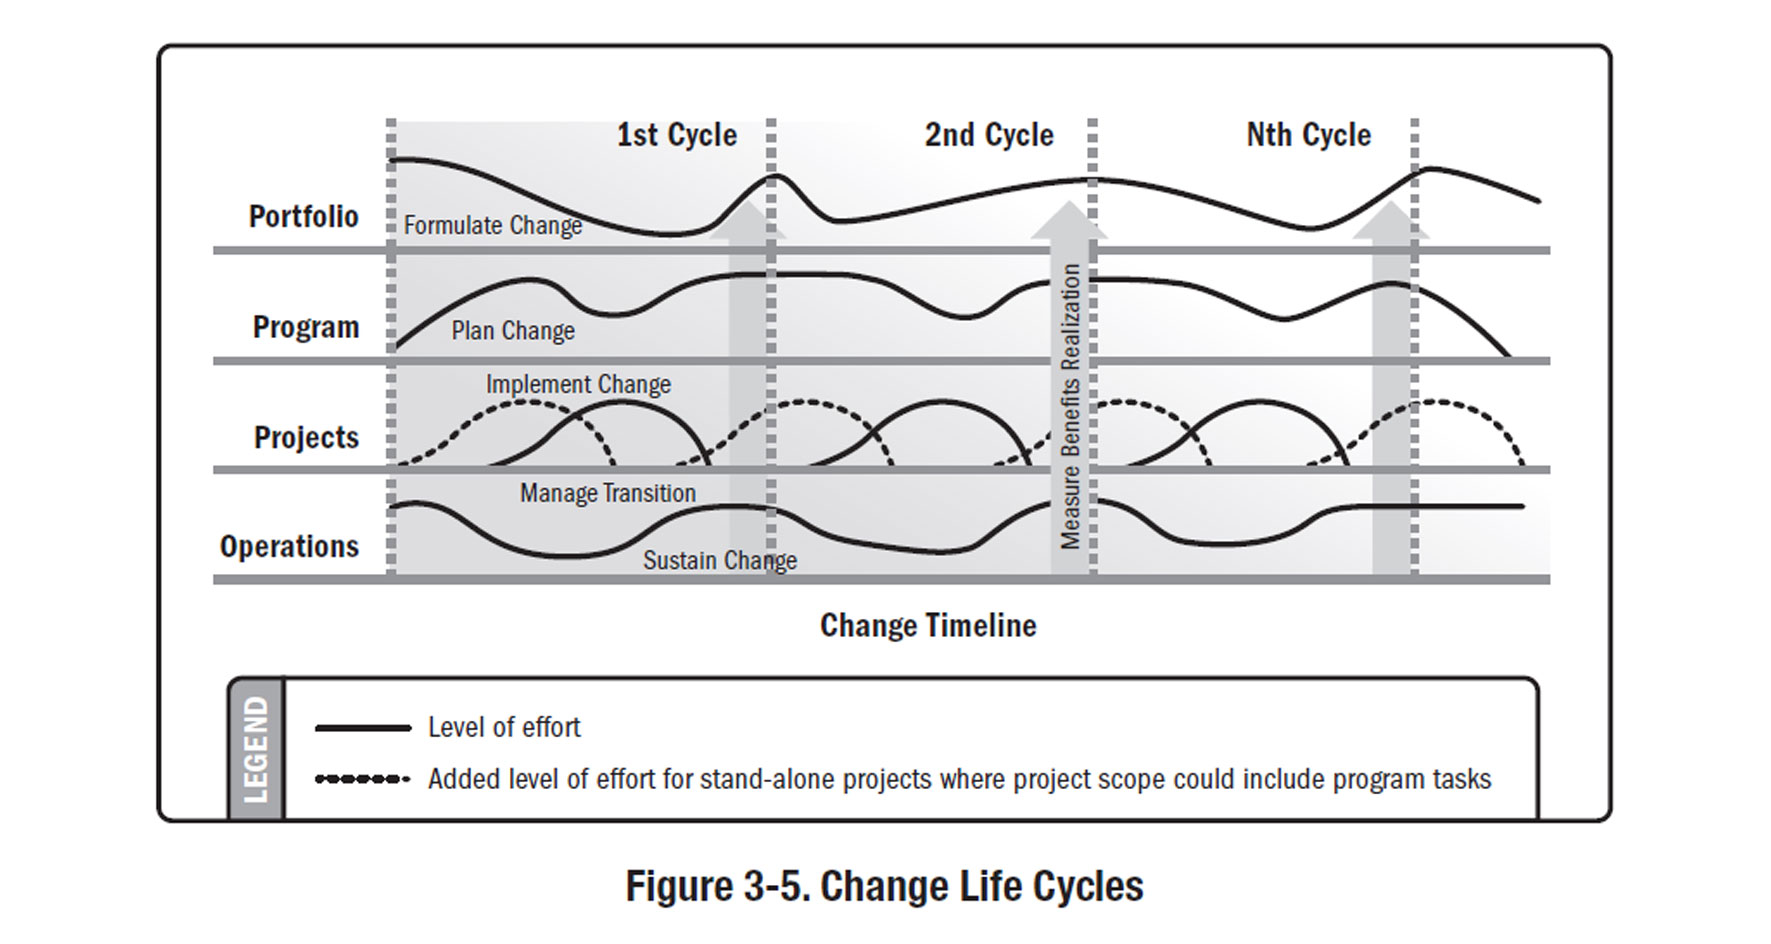 Change life cycles